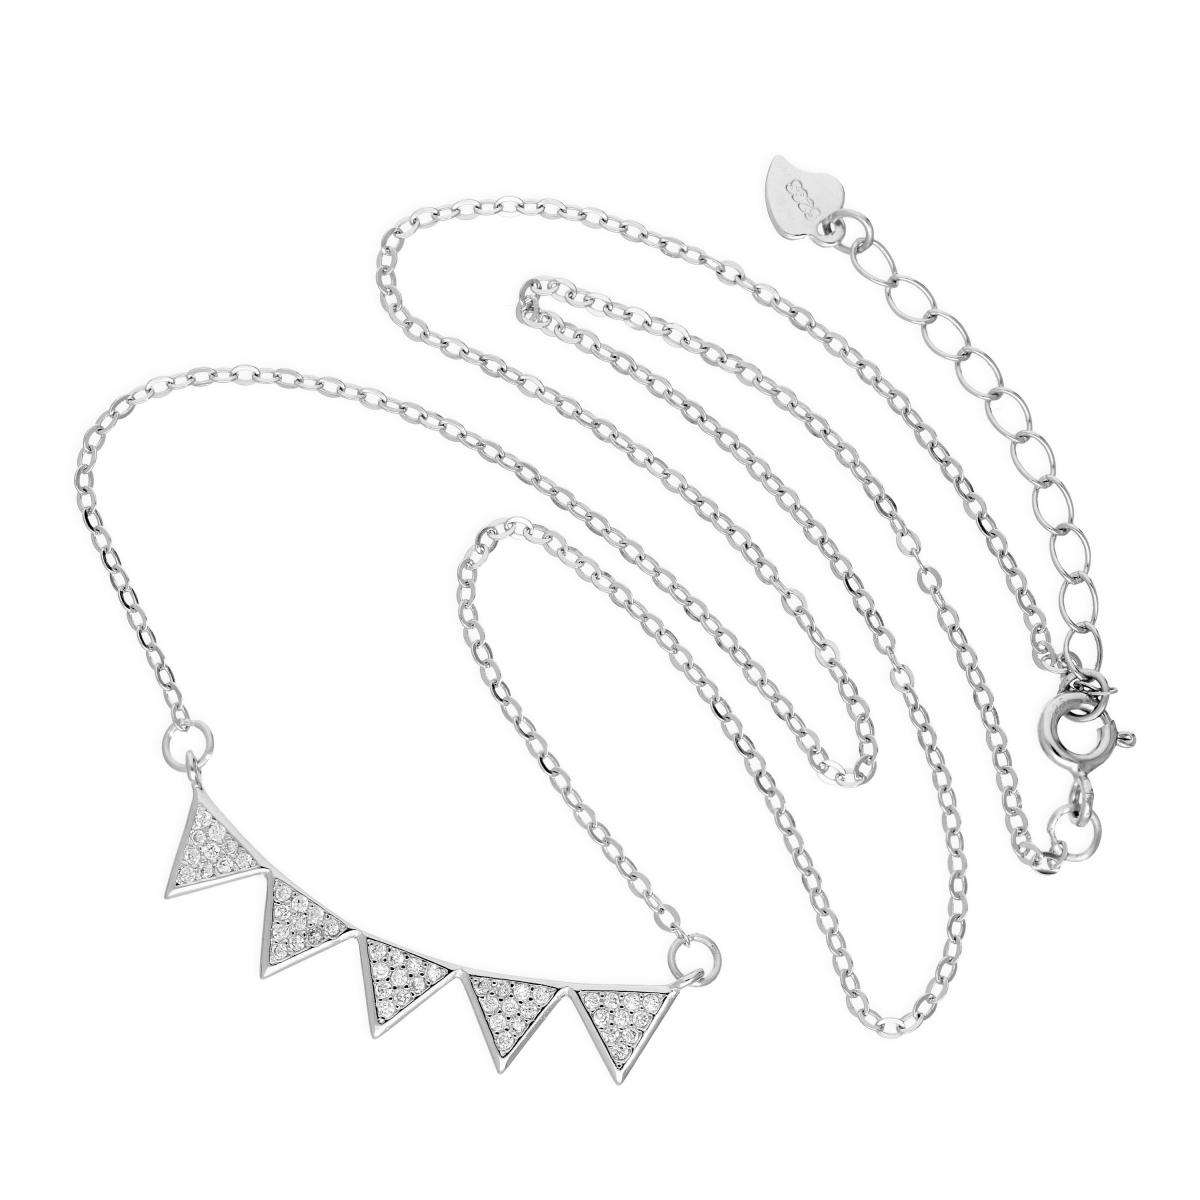 Alterative image for Sterling Silver & Clear CZ Crystal Bunting Necklace